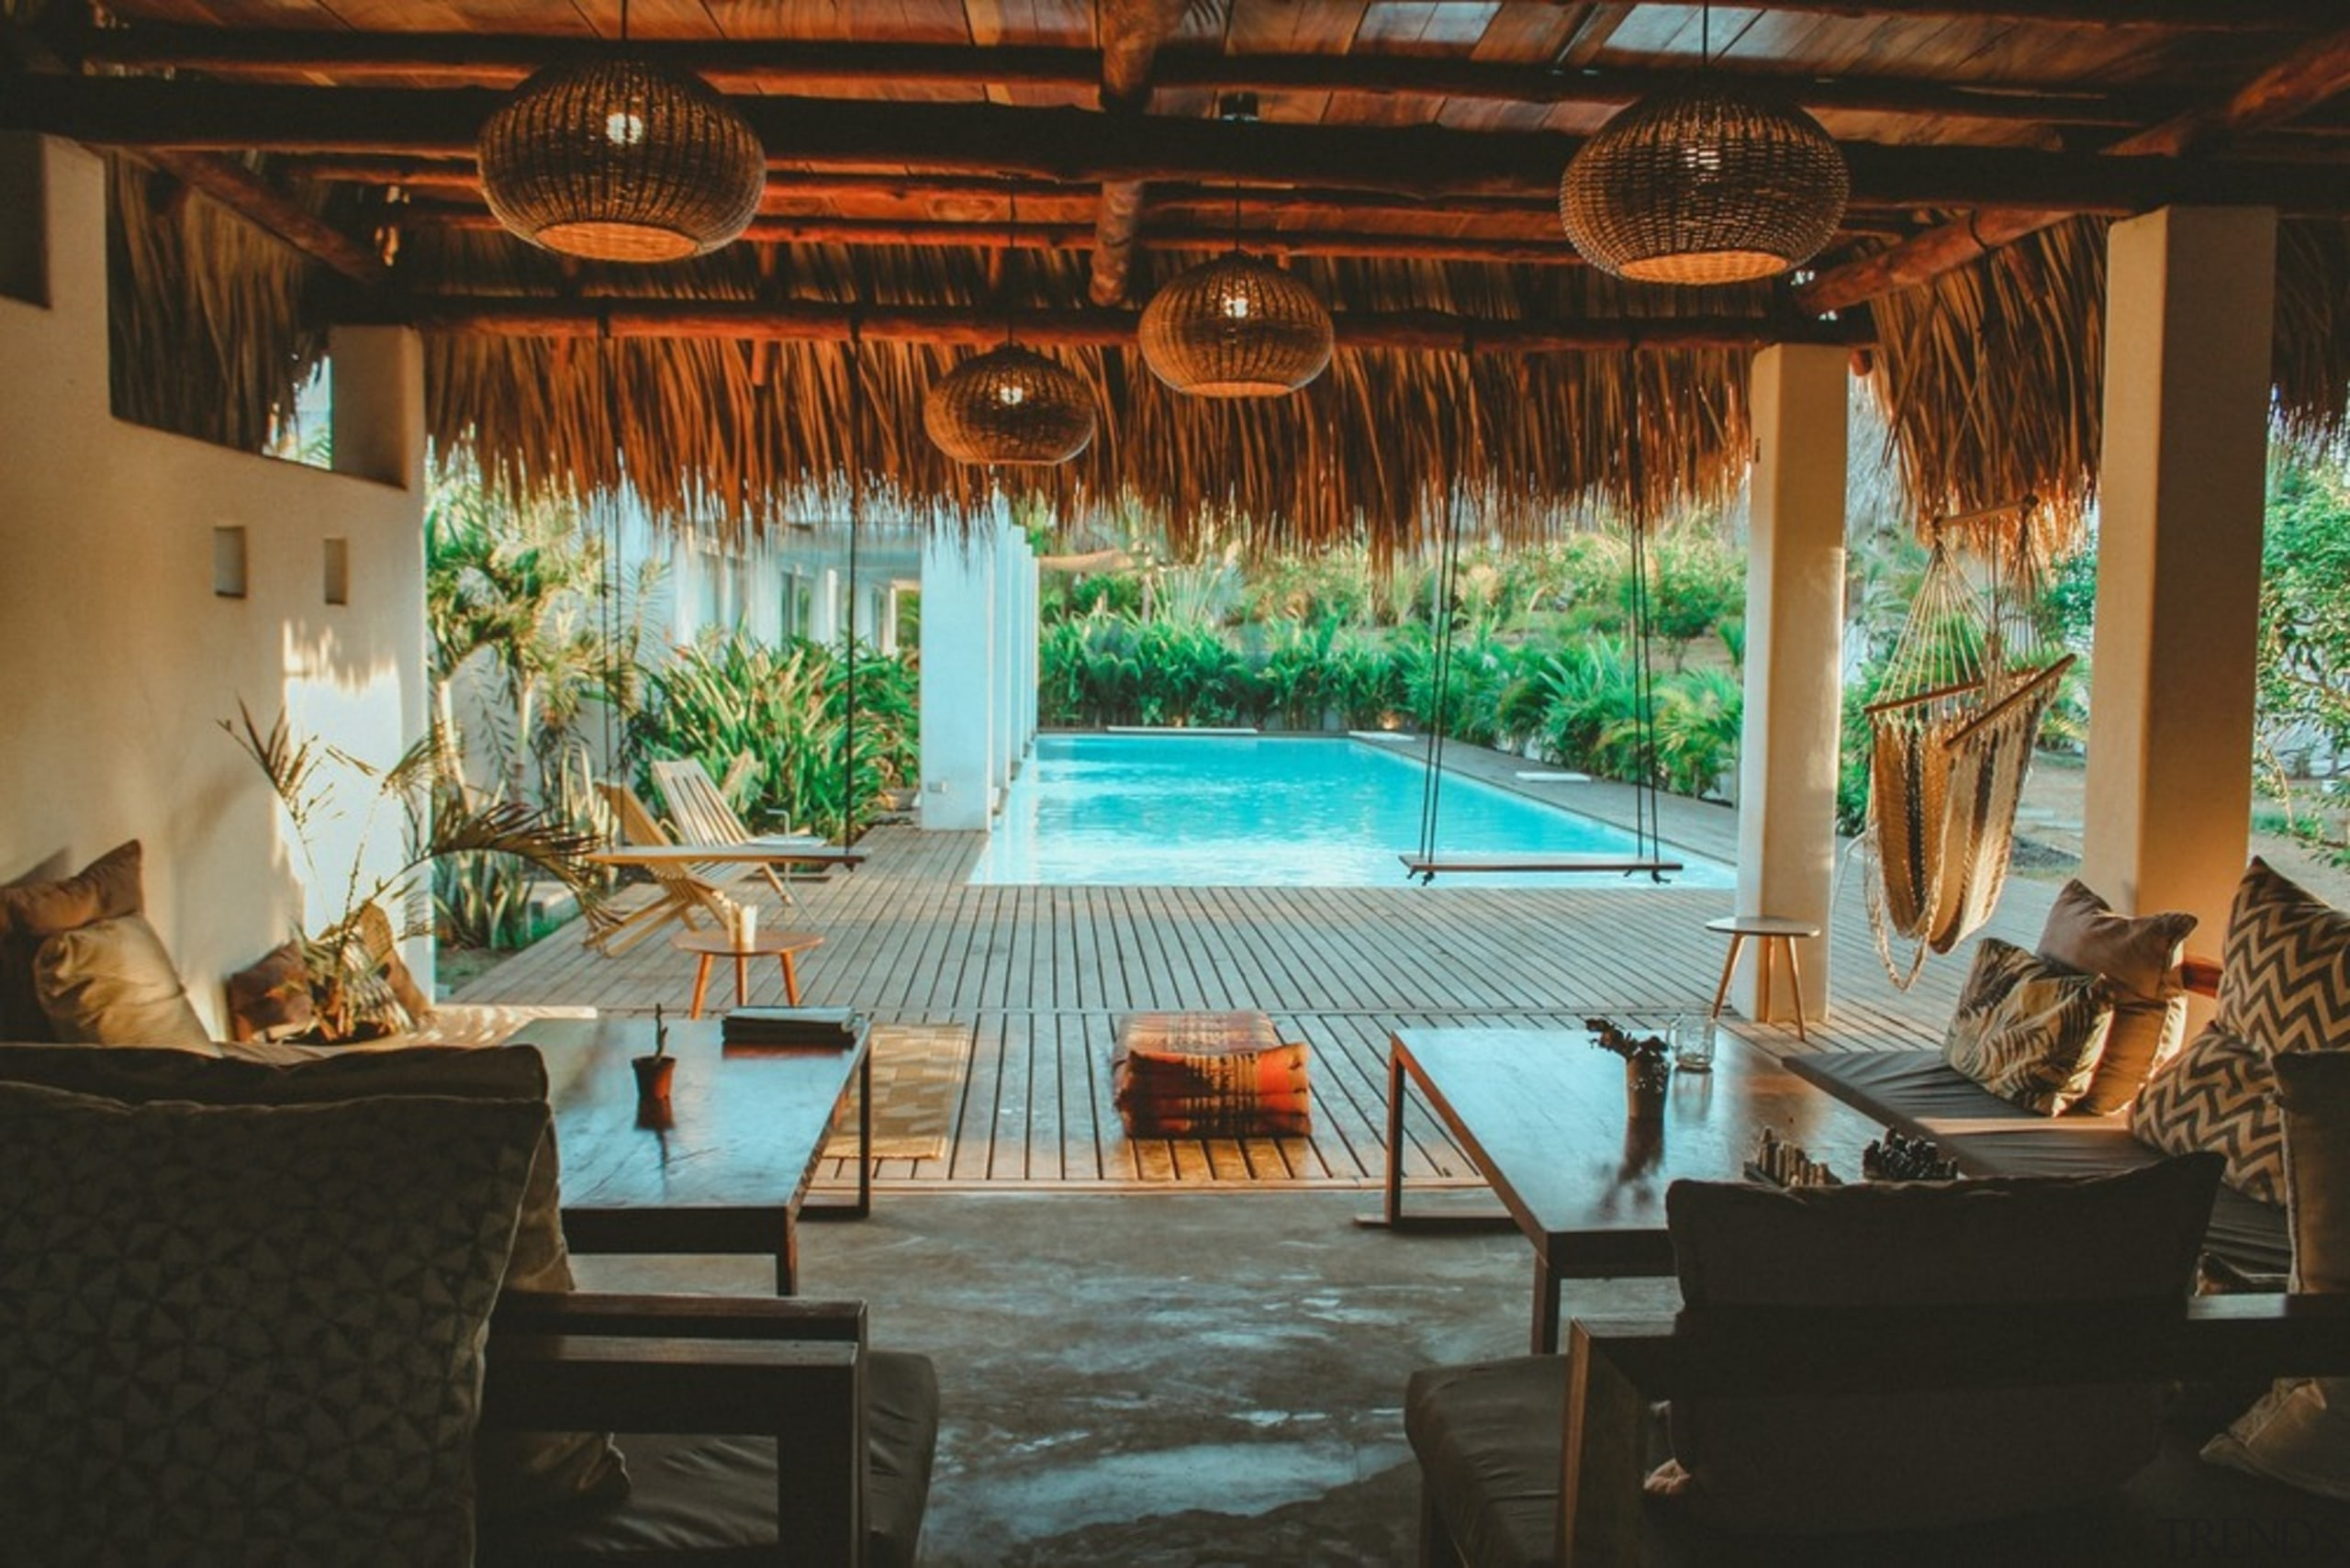 Swell - a surf and lifestyle hotel - architecture, building, ceiling, estate, furniture, home, hotel, house, interior design, leisure, property, real estate, resort, room, swimming pool, vacation, brown, black